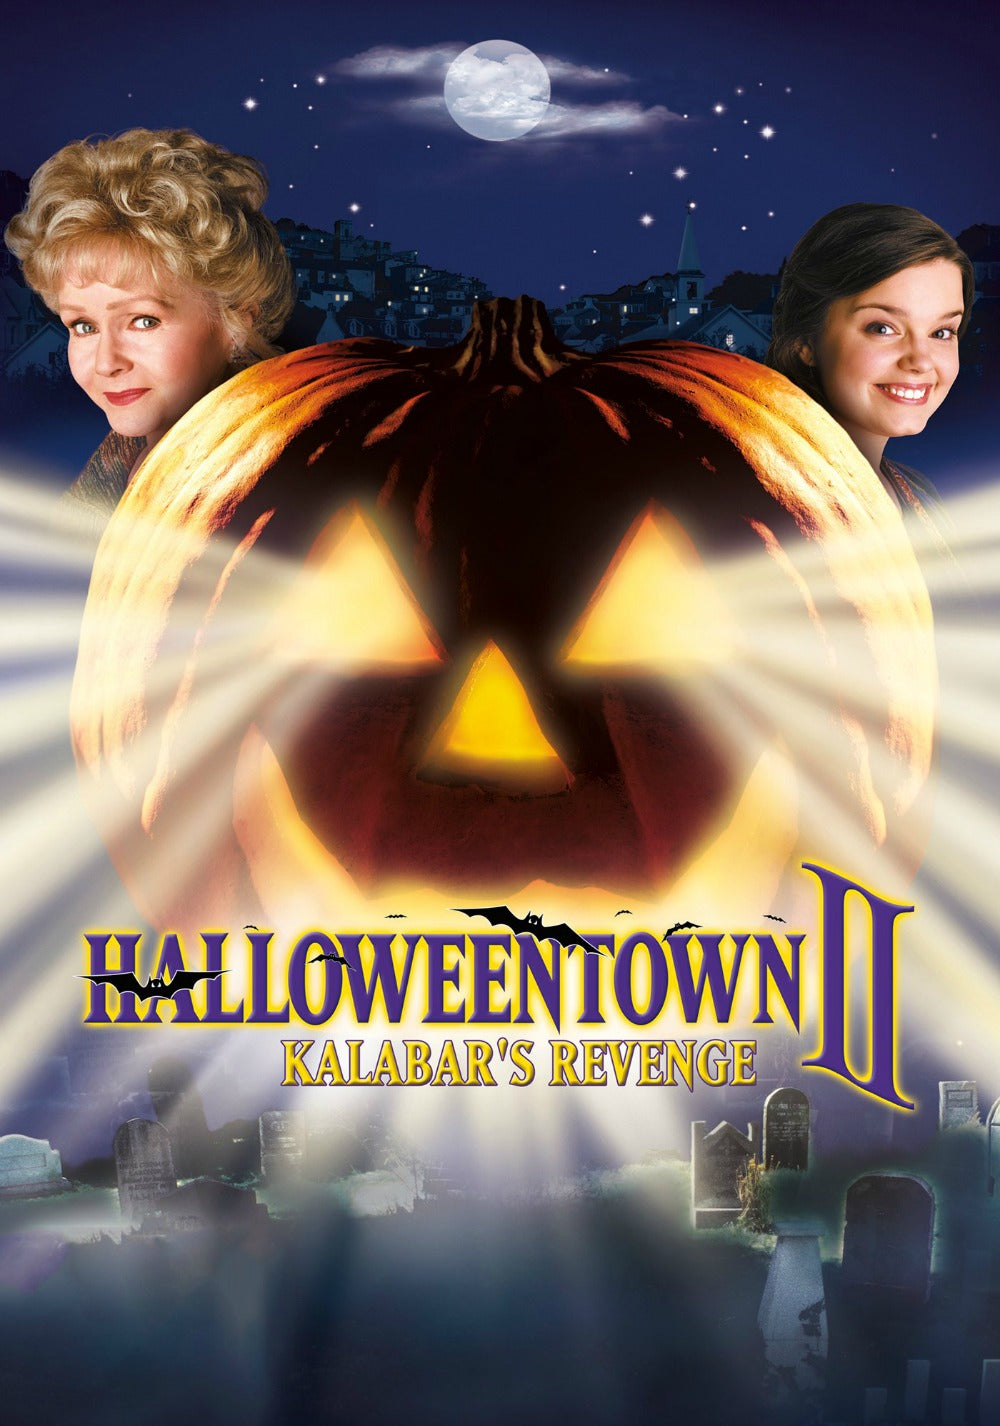 Halloweentown Sequels (2, 3, & 4)